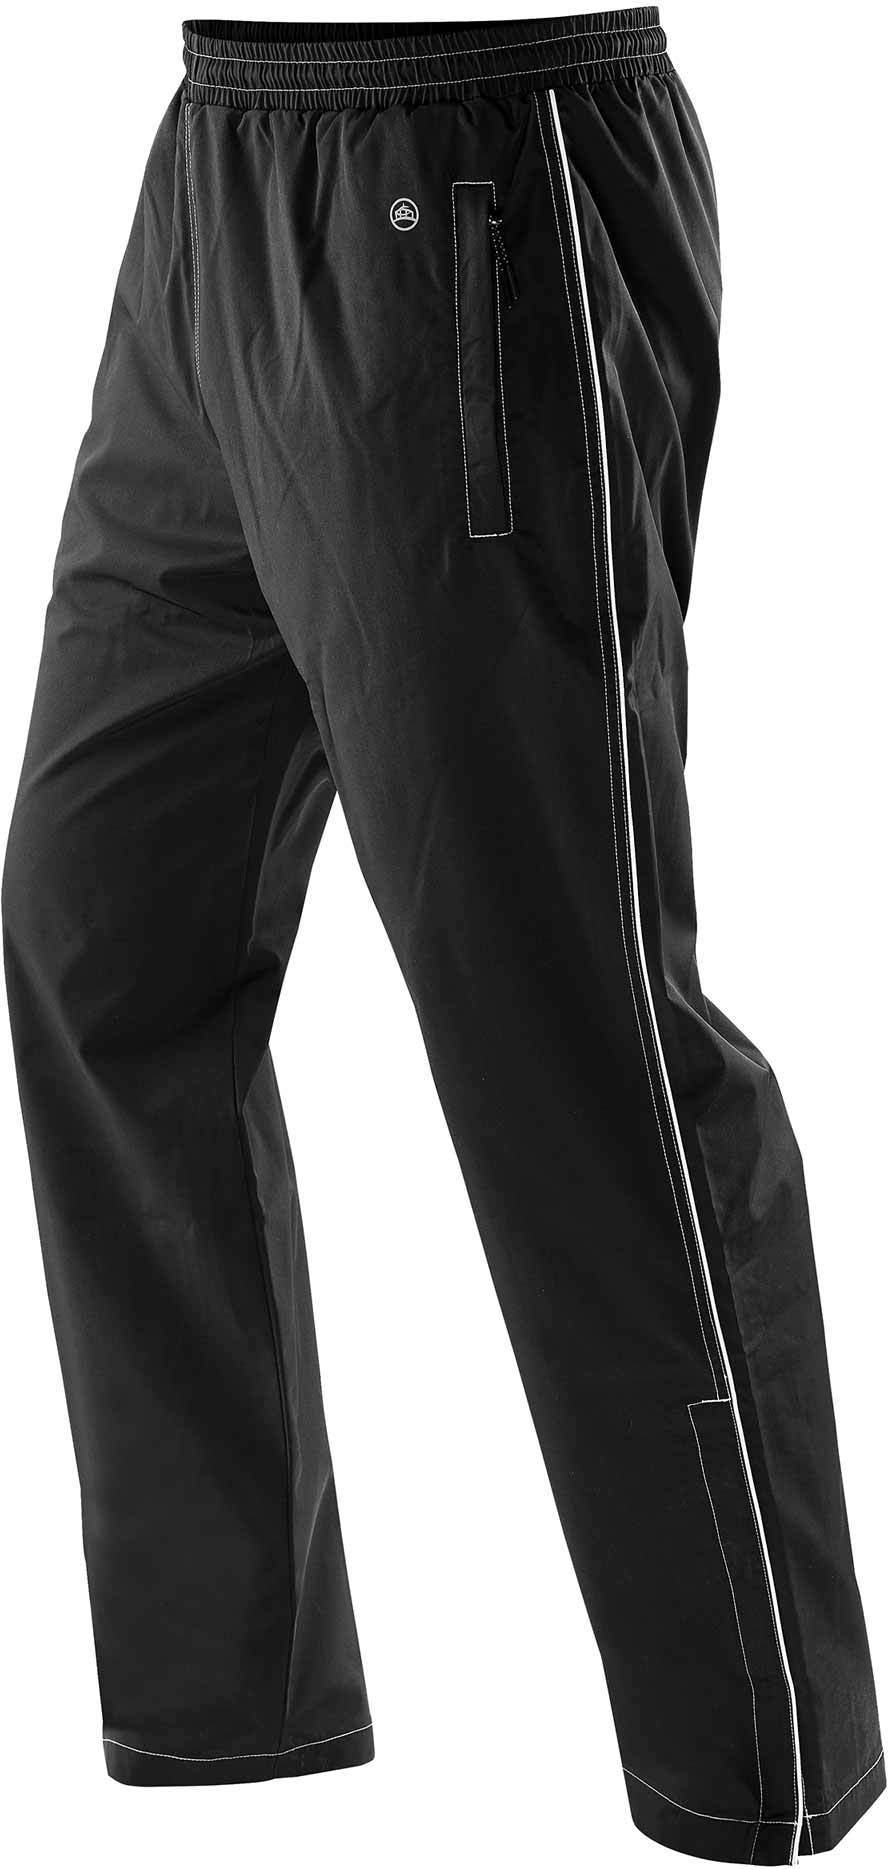 Pants - Youth's Warrior Training Pant - STXP-2Y